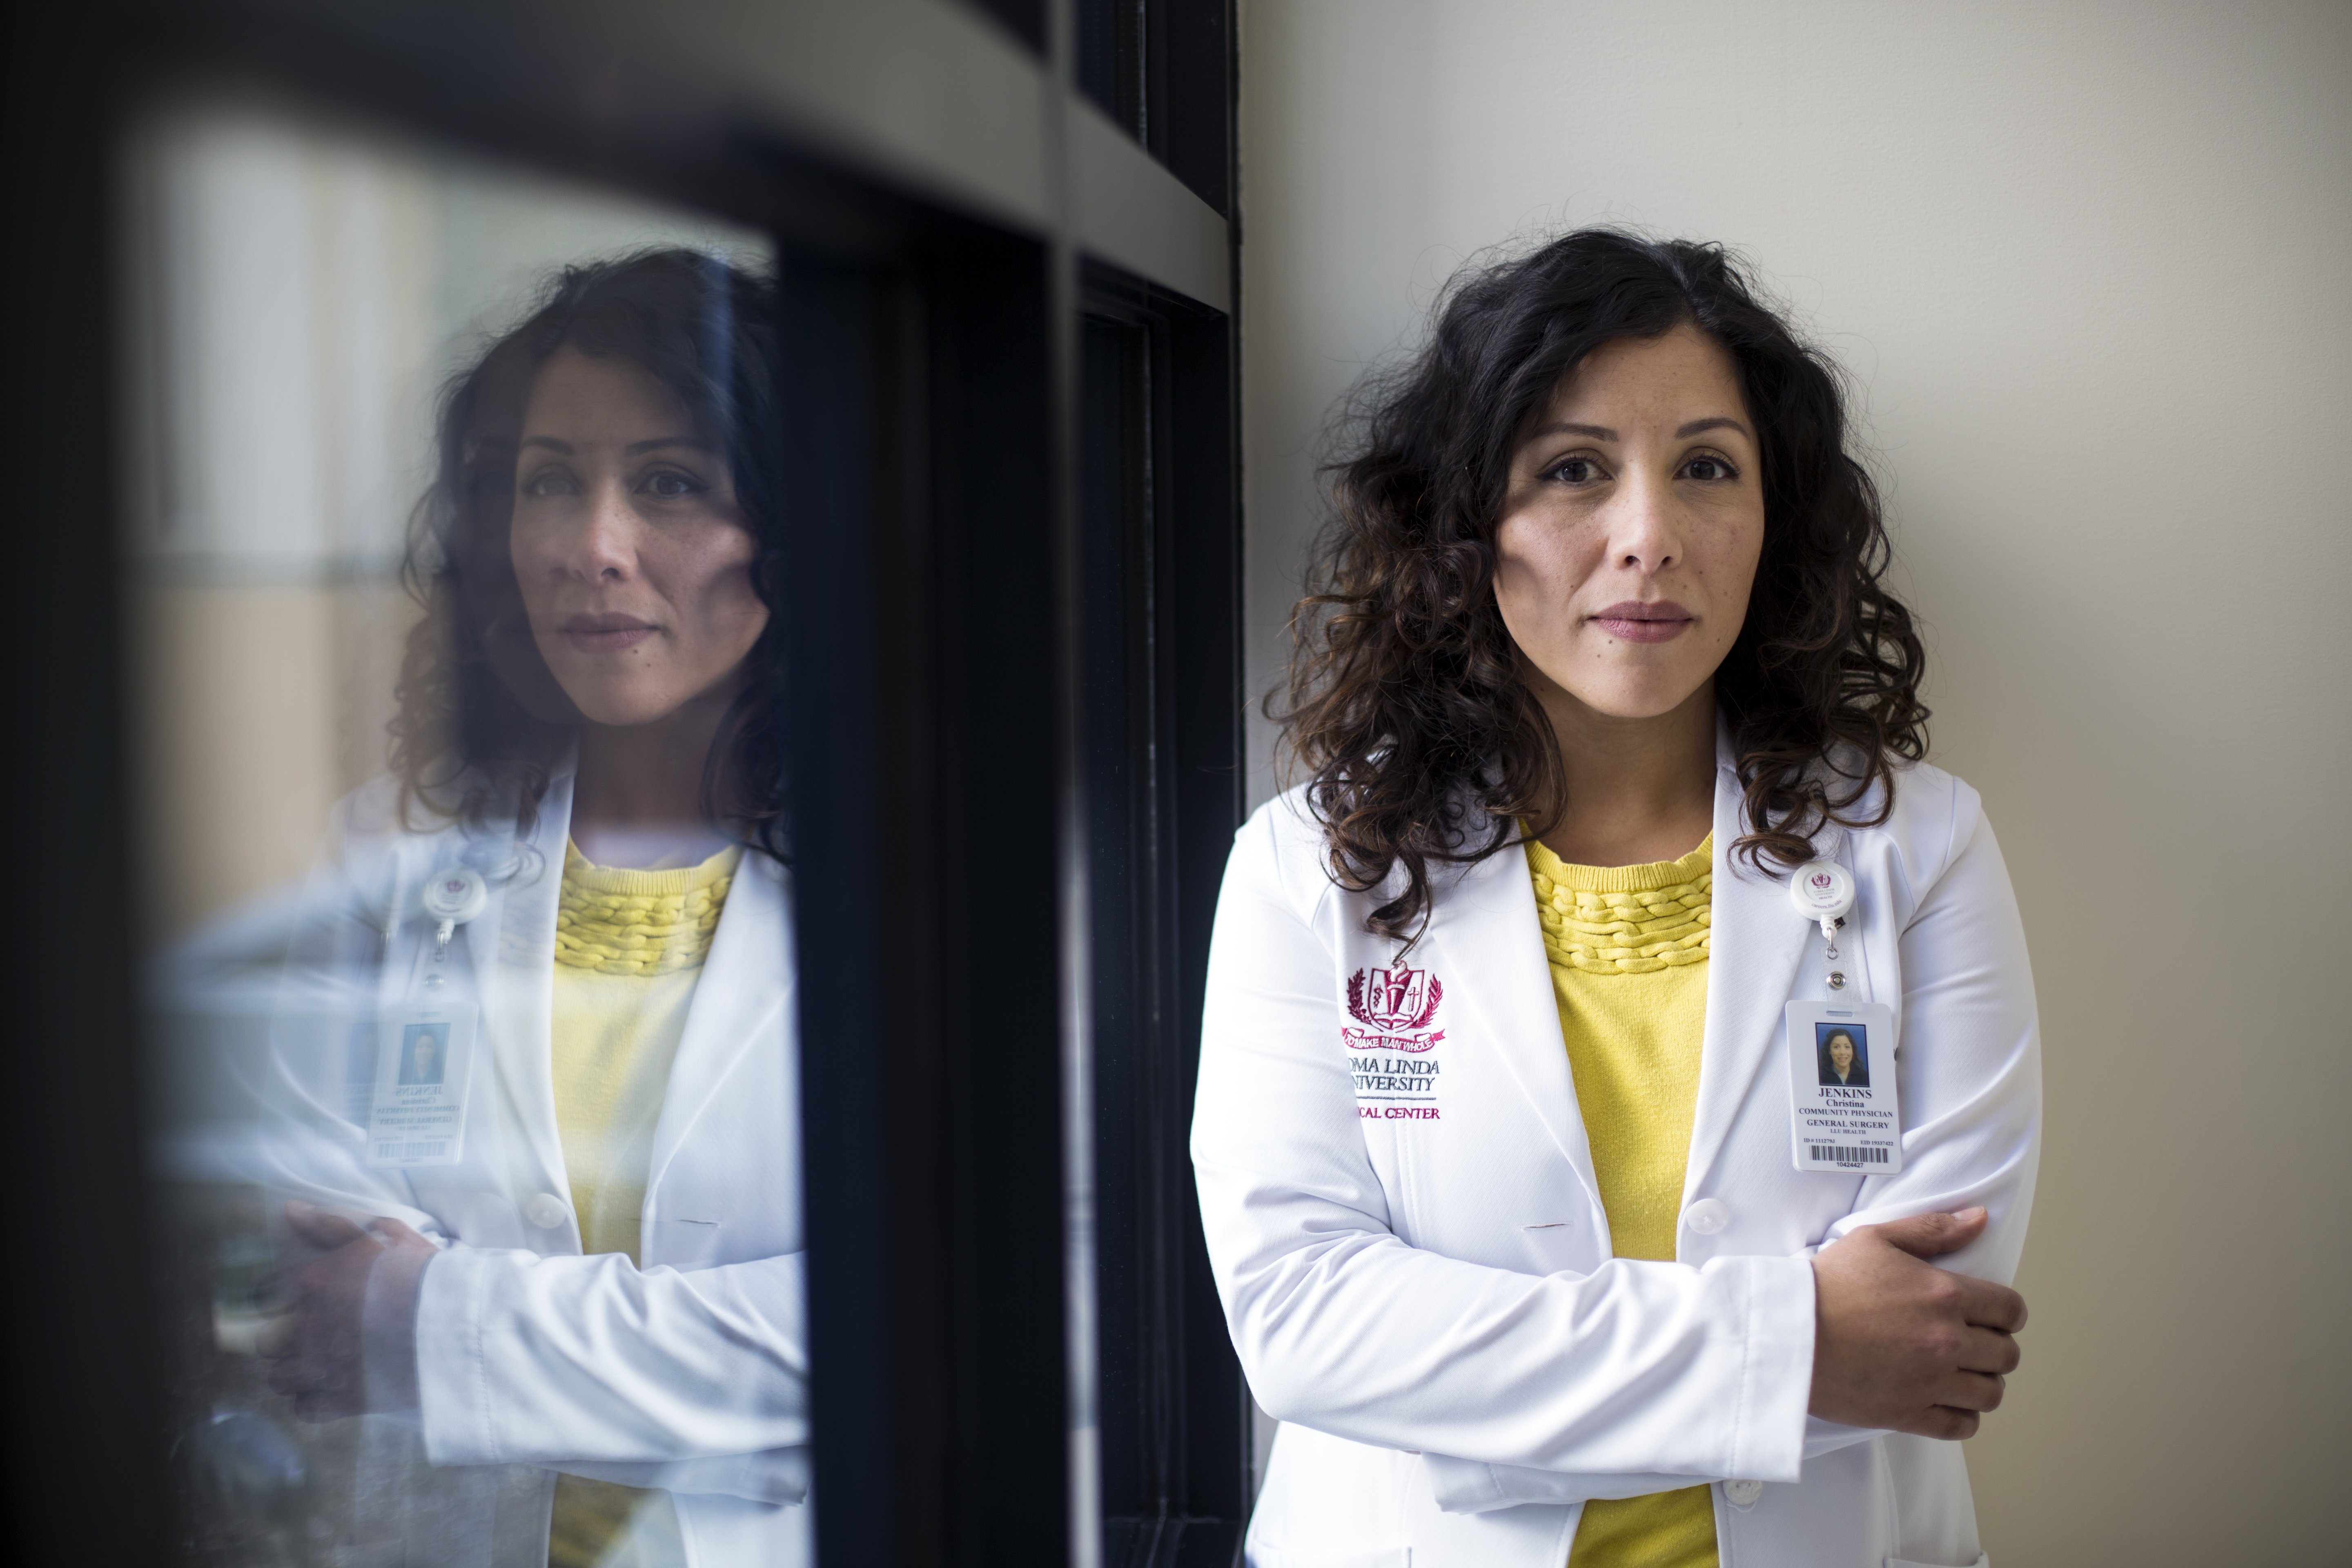 Harassed, hit on, fed up: Women in medicine want their #MeToo